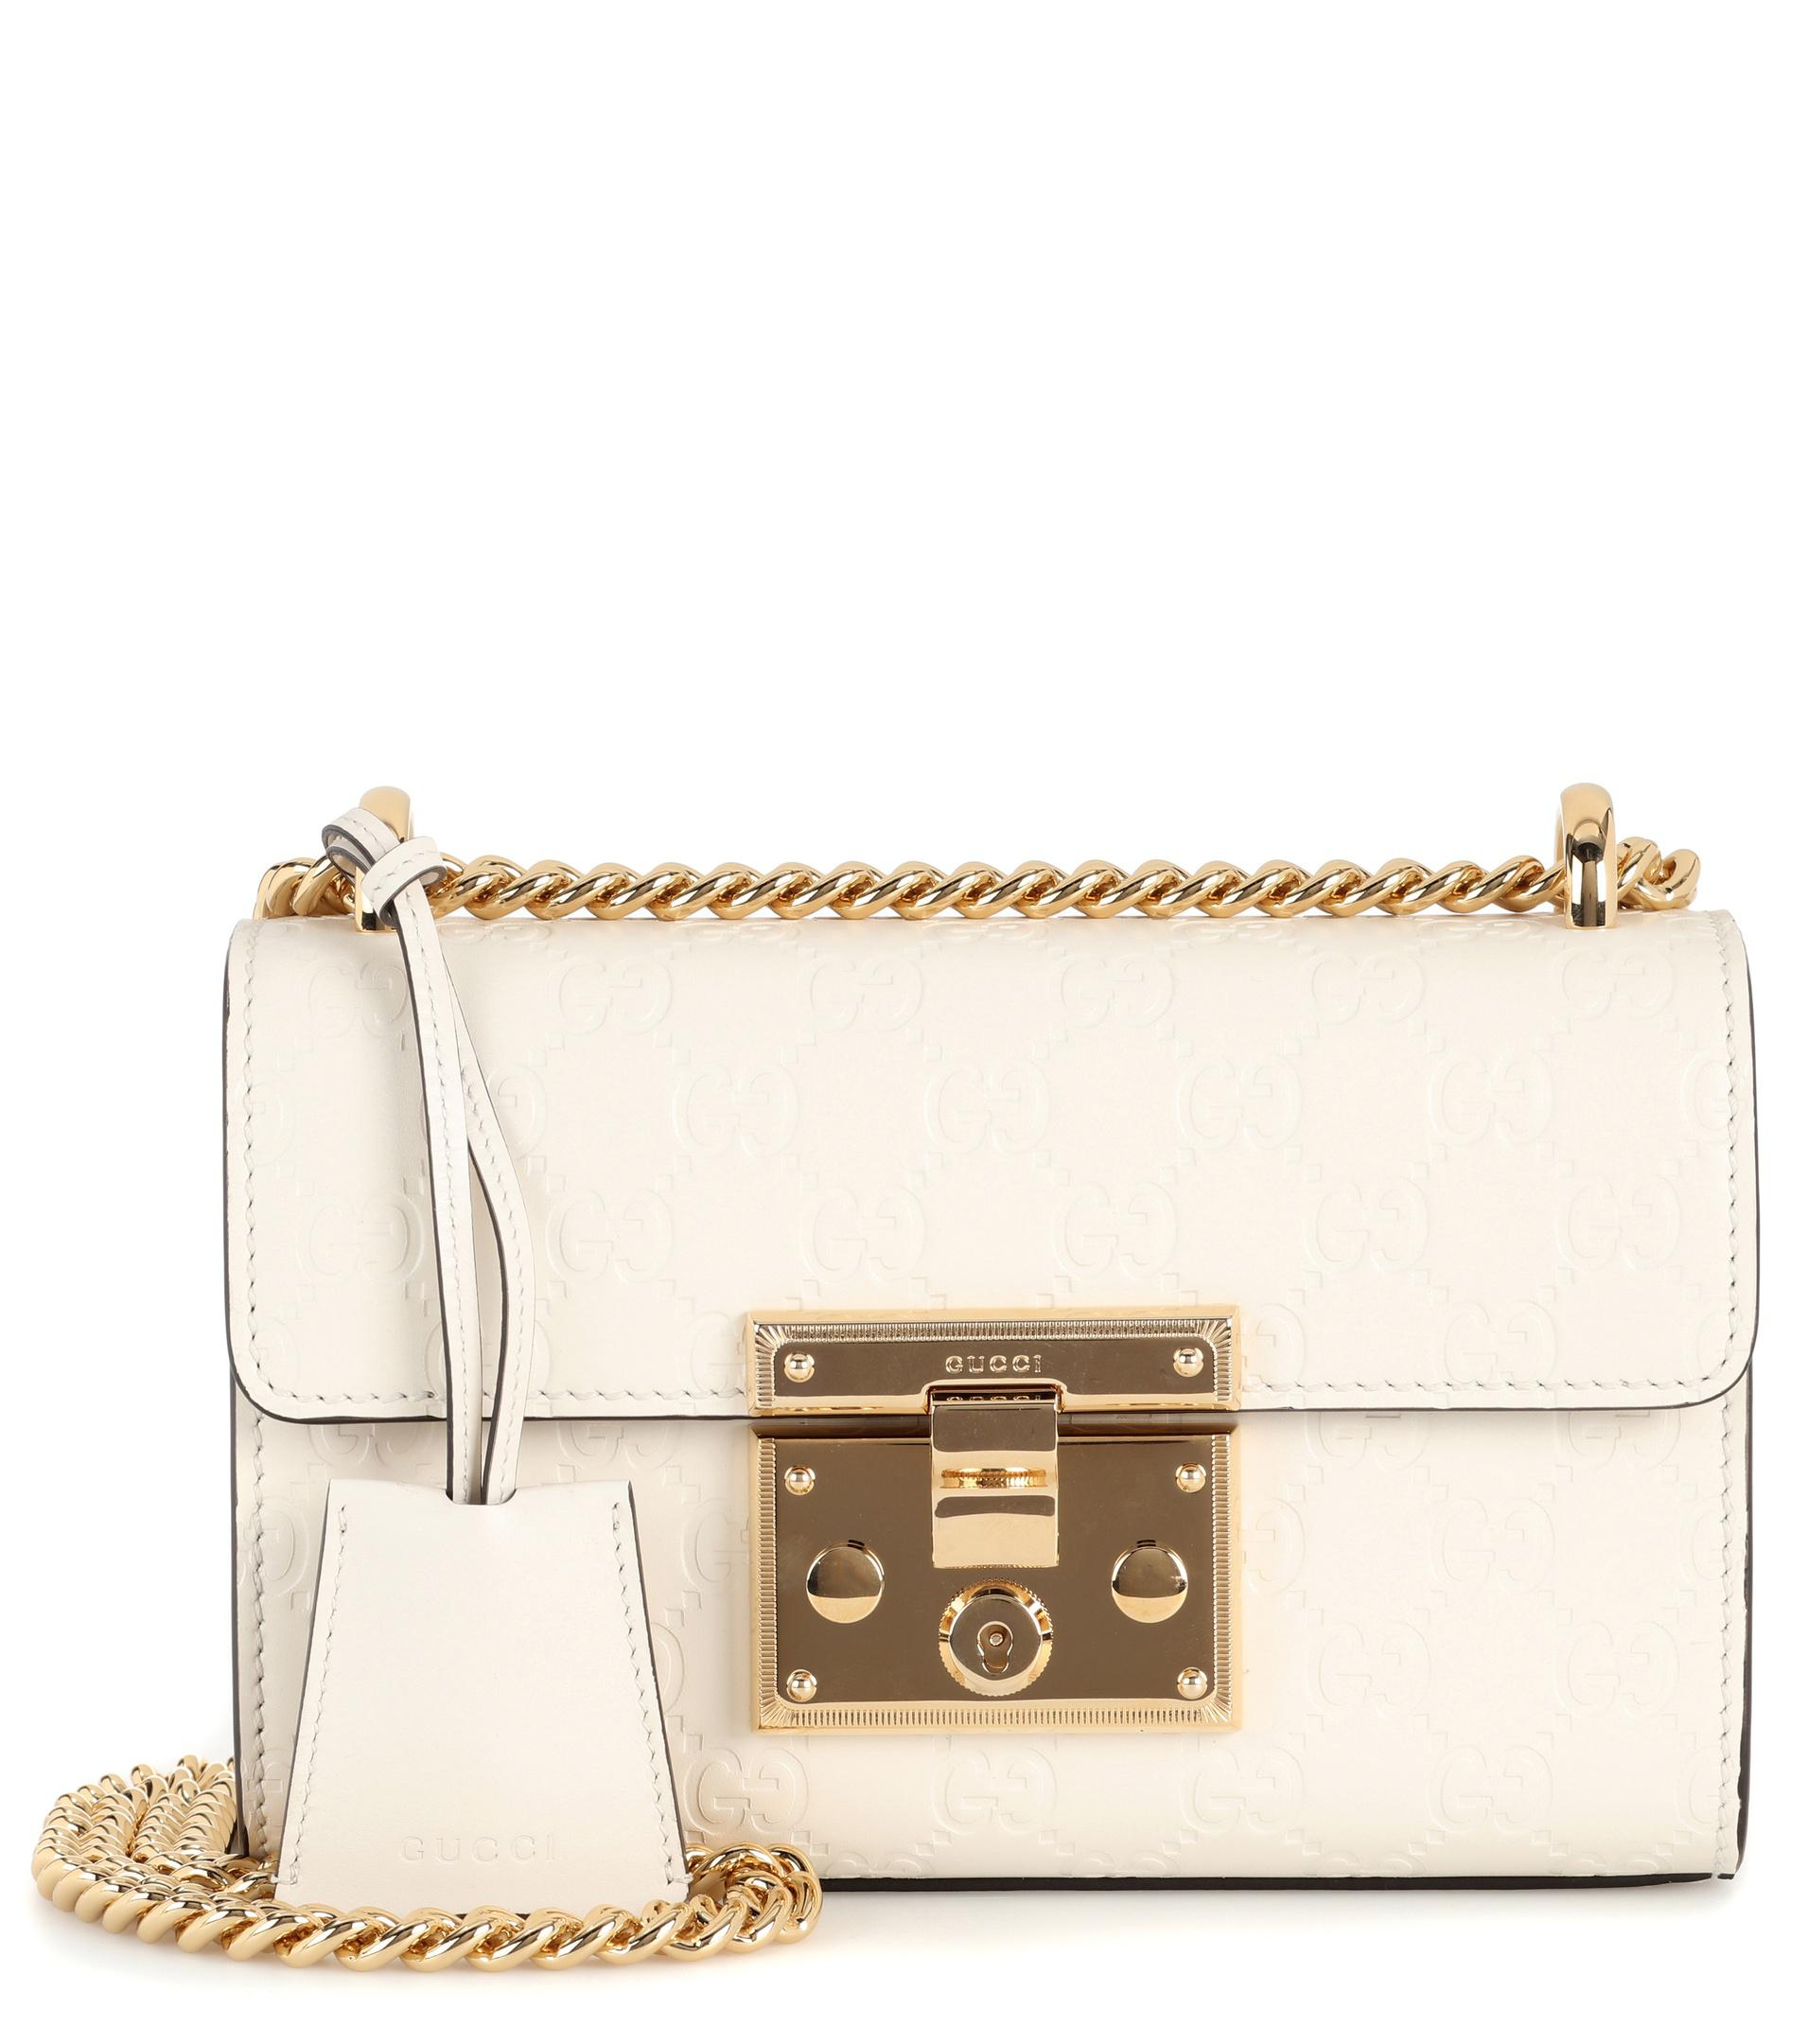 7c215c3d016507 Gucci Padlock Small Leather Shoulder Bag in White - Lyst